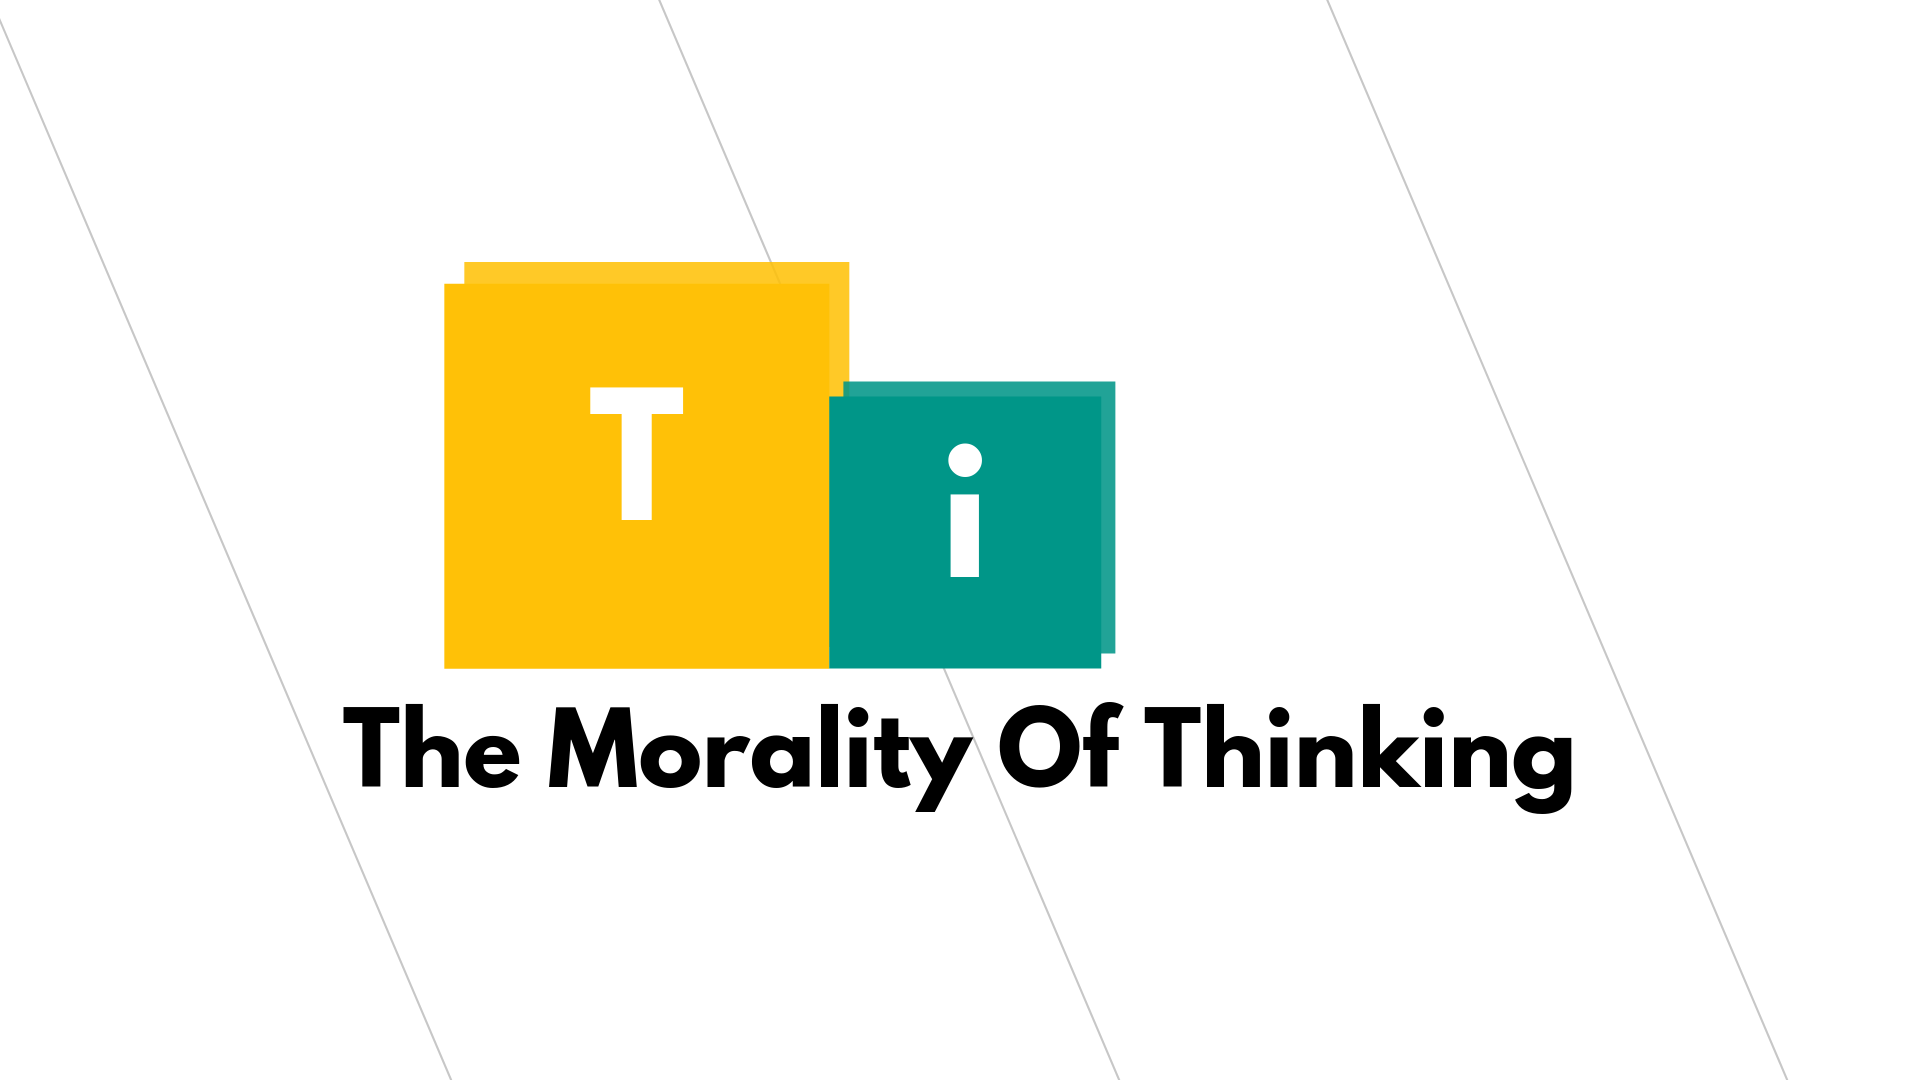 Are Thinking Types More Unethical?